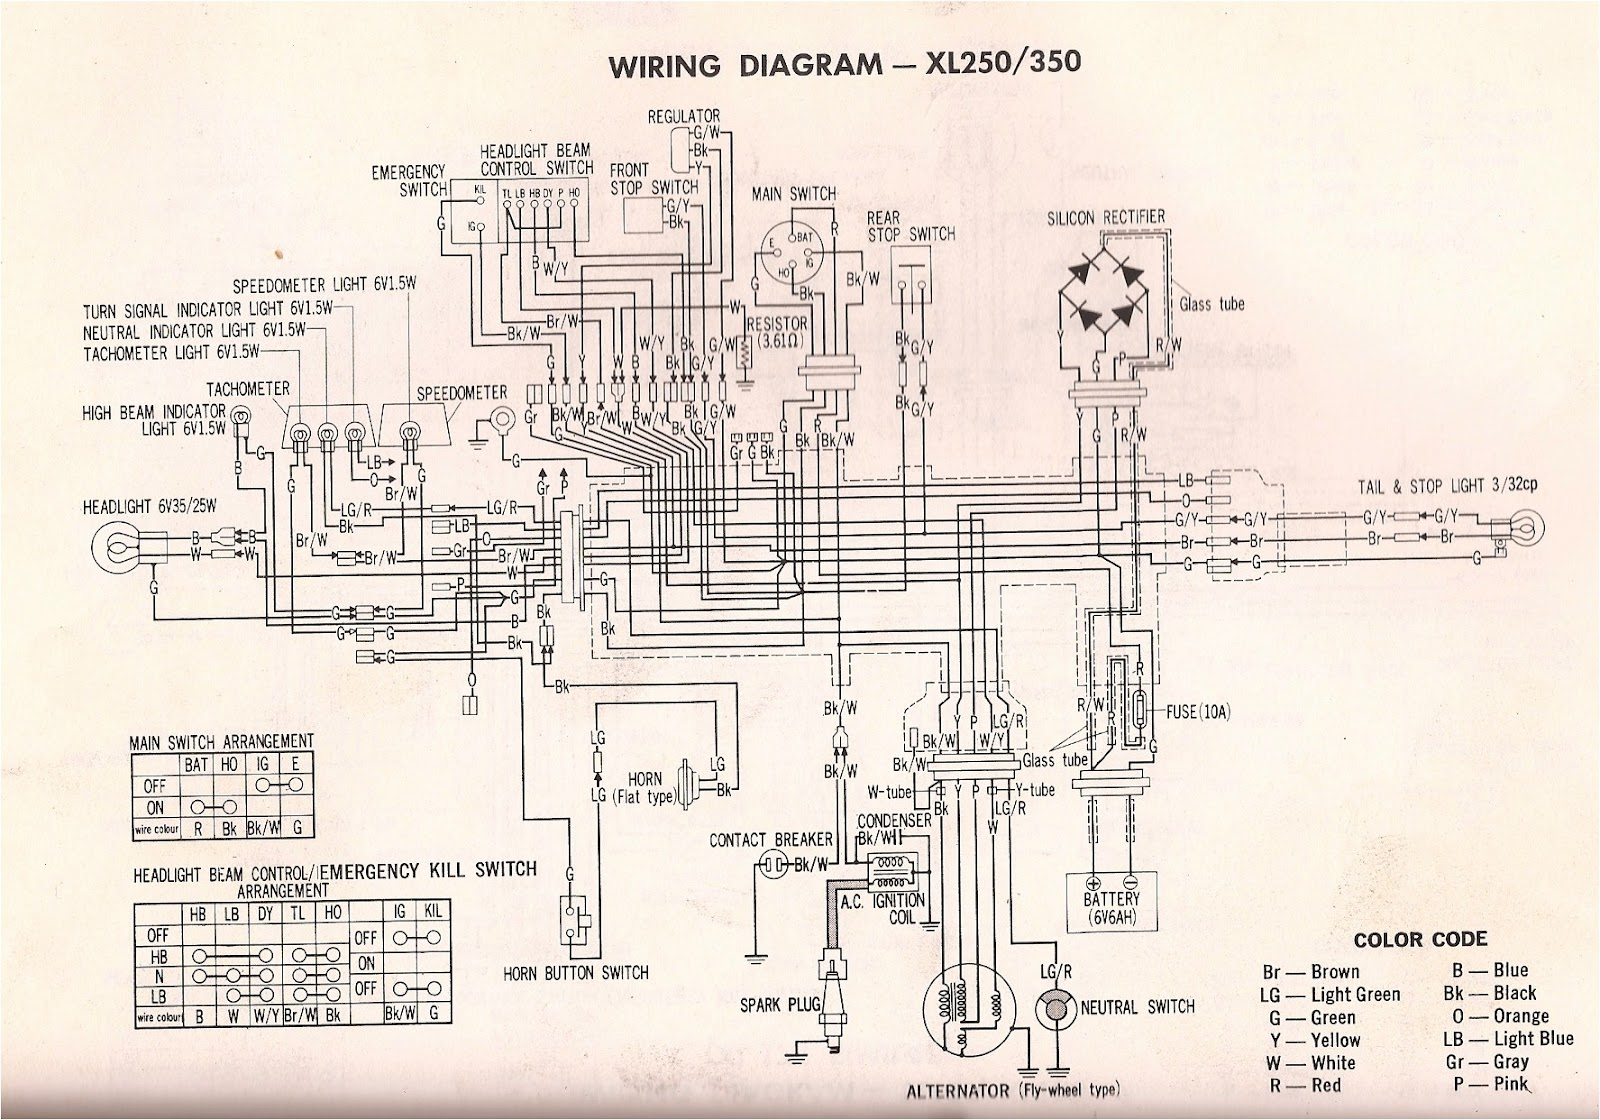 Honda Ss50 Wiring Diagram Basic Metabolic Panel R4l Xl350 And Xl250